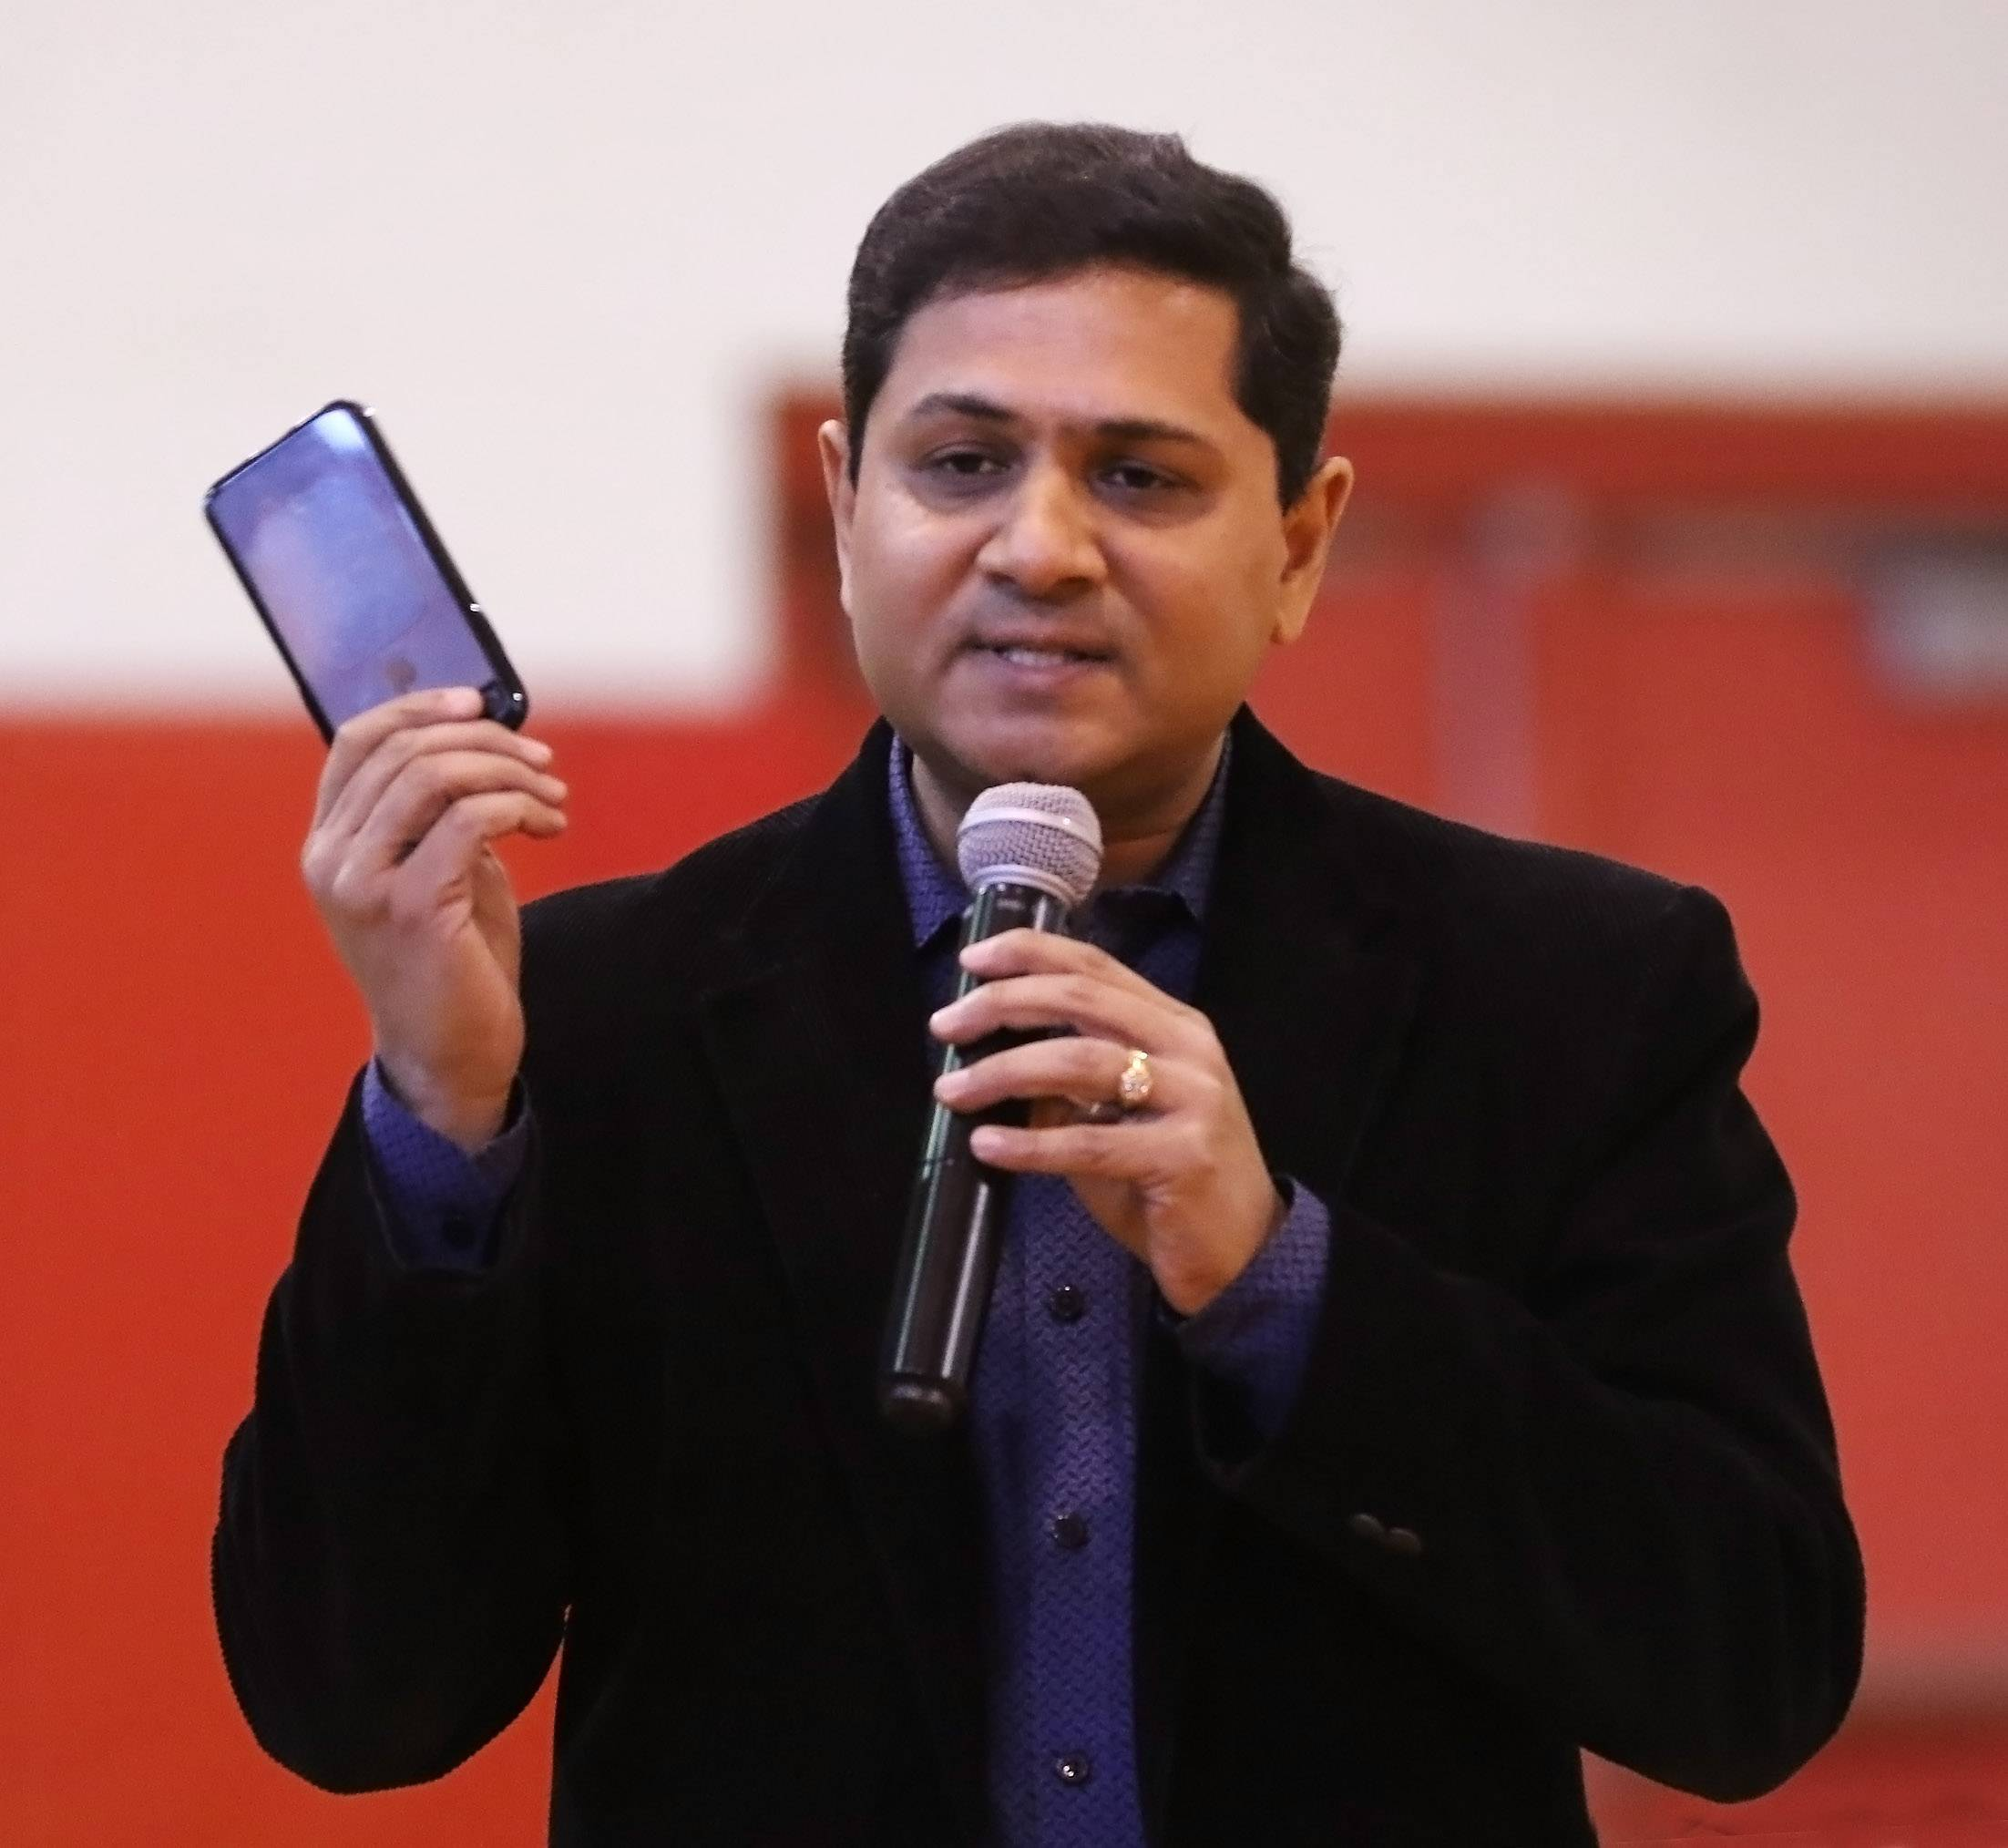 Amazon Web Services leader Hardik Bhatt discusses the computing power of his cellphone before an assembly of students during the Hour of Code initiative Tuesday at St. Anne Parish School in Barrington.